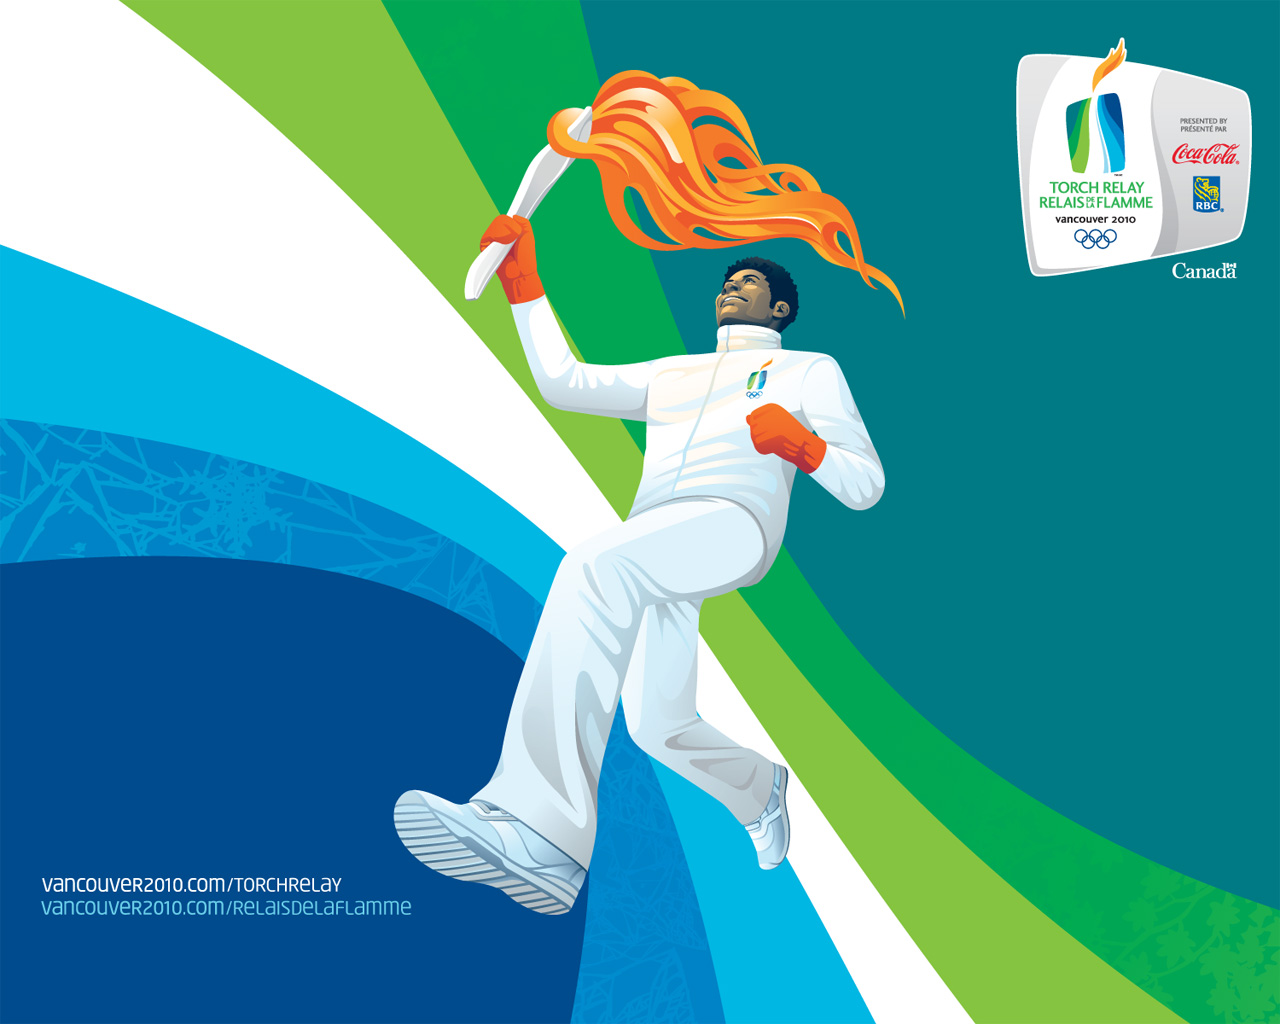 vancouver 2010 olympic winter games powerpoint backgrounds free